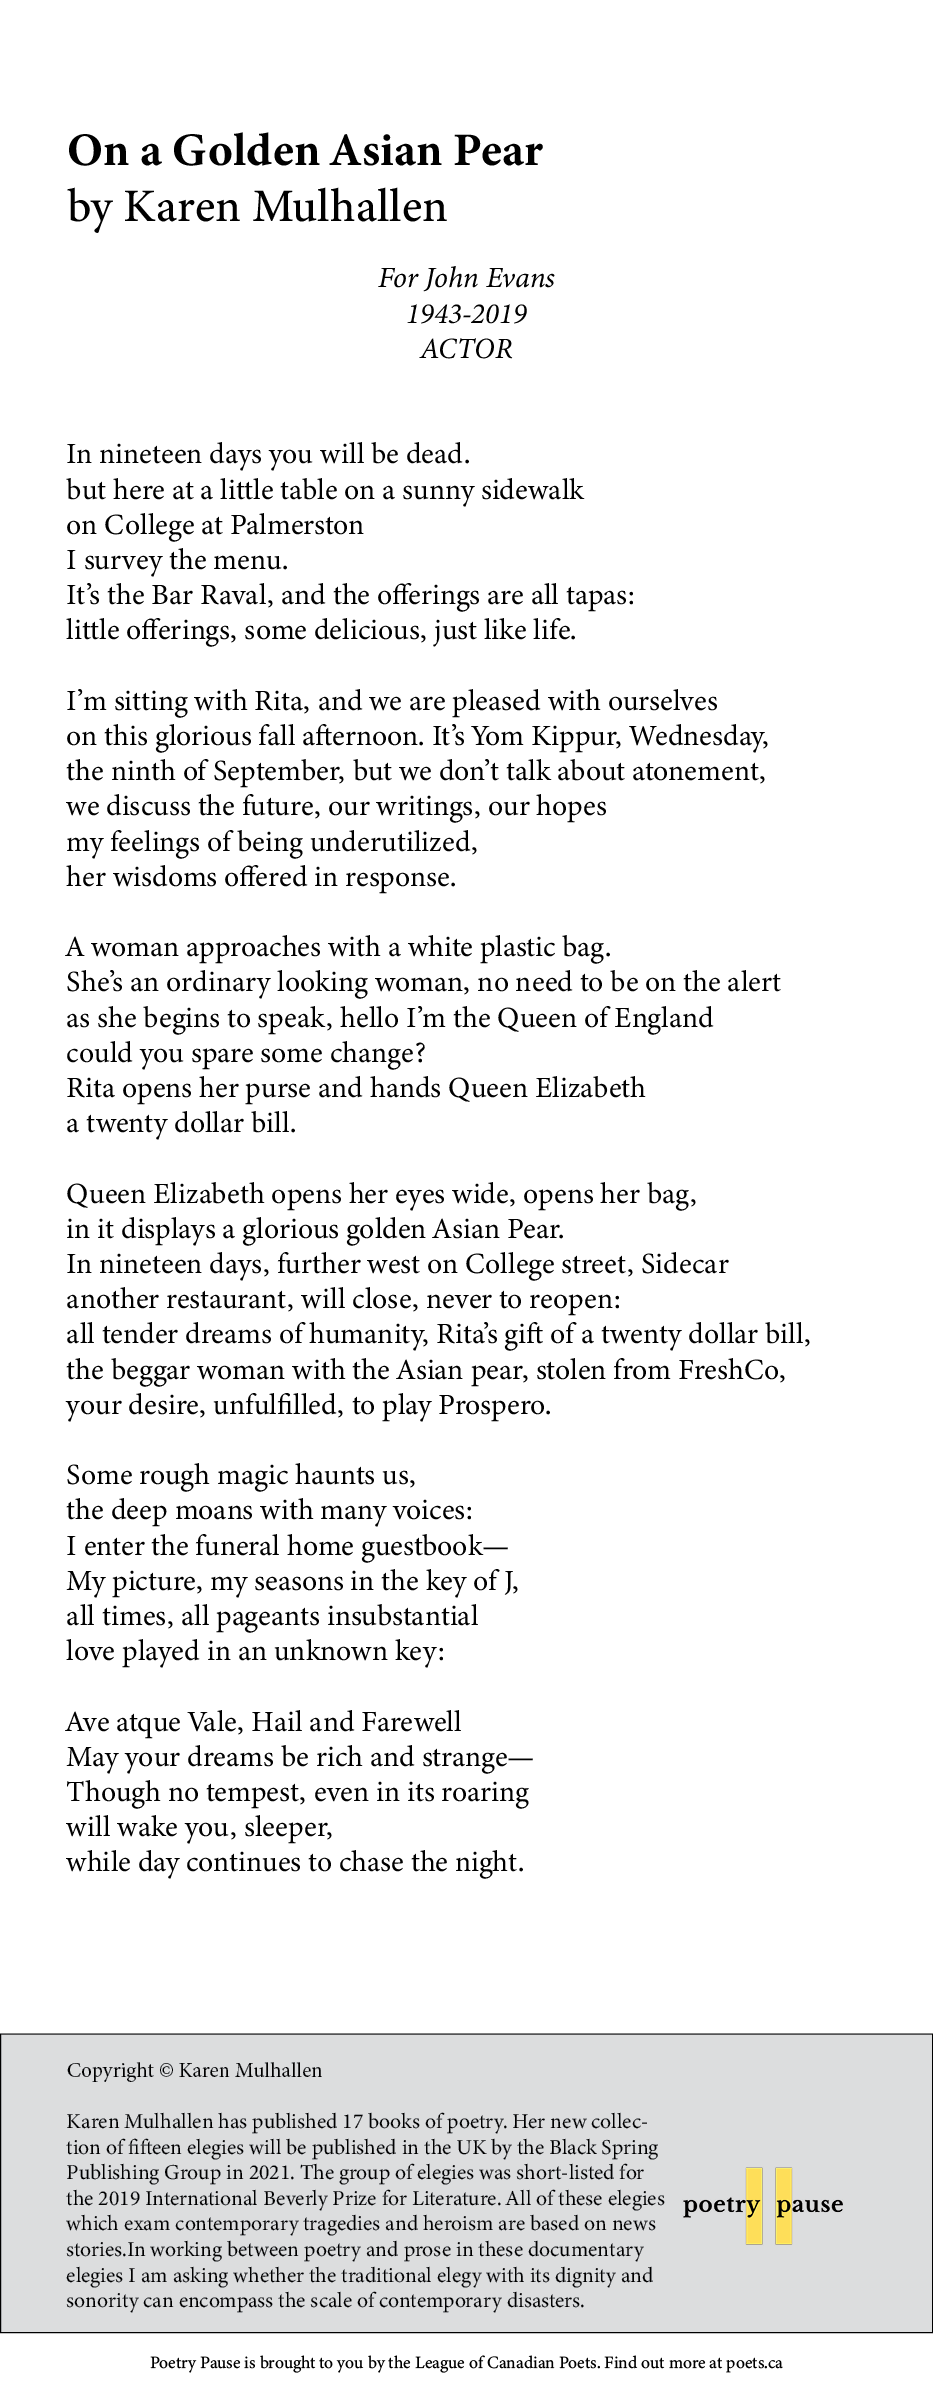 Poem name: On a Golden Asian Pear Poet name: Karen Mulhallen Poem: For John Evans 1943-2019  ACTOR  In nineteen days you will be dead.  but here at a little table on a sunny sidewalk on College at Palmerston I survey the menu. It's the Bar Raval, and the offerings are all tapas: little offerings, some delicious, just like life.  I'm sitting with Rita, and we are pleased with ourselves on this glorious fall afternoon. It's Yom Kippur, Wednesday, the ninth of September, but we don't talk about atonement, we discuss the future, our writings, our hopes my feelings of being underutilized,  her wisdoms offered in response.  A woman approaches with a white plastic bag. She's an ordinary looking woman, no need to be on the alert as she begins to speak, hello I'm the Queen of England could you spare some change? Rita opens her purse and hands Queen Elizabeth a twenty dollar bill.  Queen Elizabeth opens her eyes wide, opens her bag,  in it displays a glorious golden Asian Pear. In nineteen days, further west on College street, Sidecar another restaurant, will close, never to reopen: all tender dreams of humanity, Rita's gift of a twenty dollar bill,  the beggar woman with the Asian pear, stolen from FreshCo, your desire, unfulfilled, to play Prospero.  Some rough magic haunts us,  the deep moans with many voices: I enter the funeral home guestbook— My picture, my seasons in the key of J,  all times, all pageants insubstantial love played in an unknown key:  Ave atque Vale, Hail and Farewell May your dreams be rich and strange— Though no tempest, even in its roaring will wake you, sleeper, while day continues to chase the night. End of poem. Credits: Copyright © Karen Mulhallen Karen Mulhallen has published 17 books of poetry. Her new collection of fifteen elegies will be published in the UK by the Black Spring Publishing Group in 2021. The group of elegies was short-listed for the 2019 International Beverly Prize for Literature. All of these elegies which exam contemporary tr